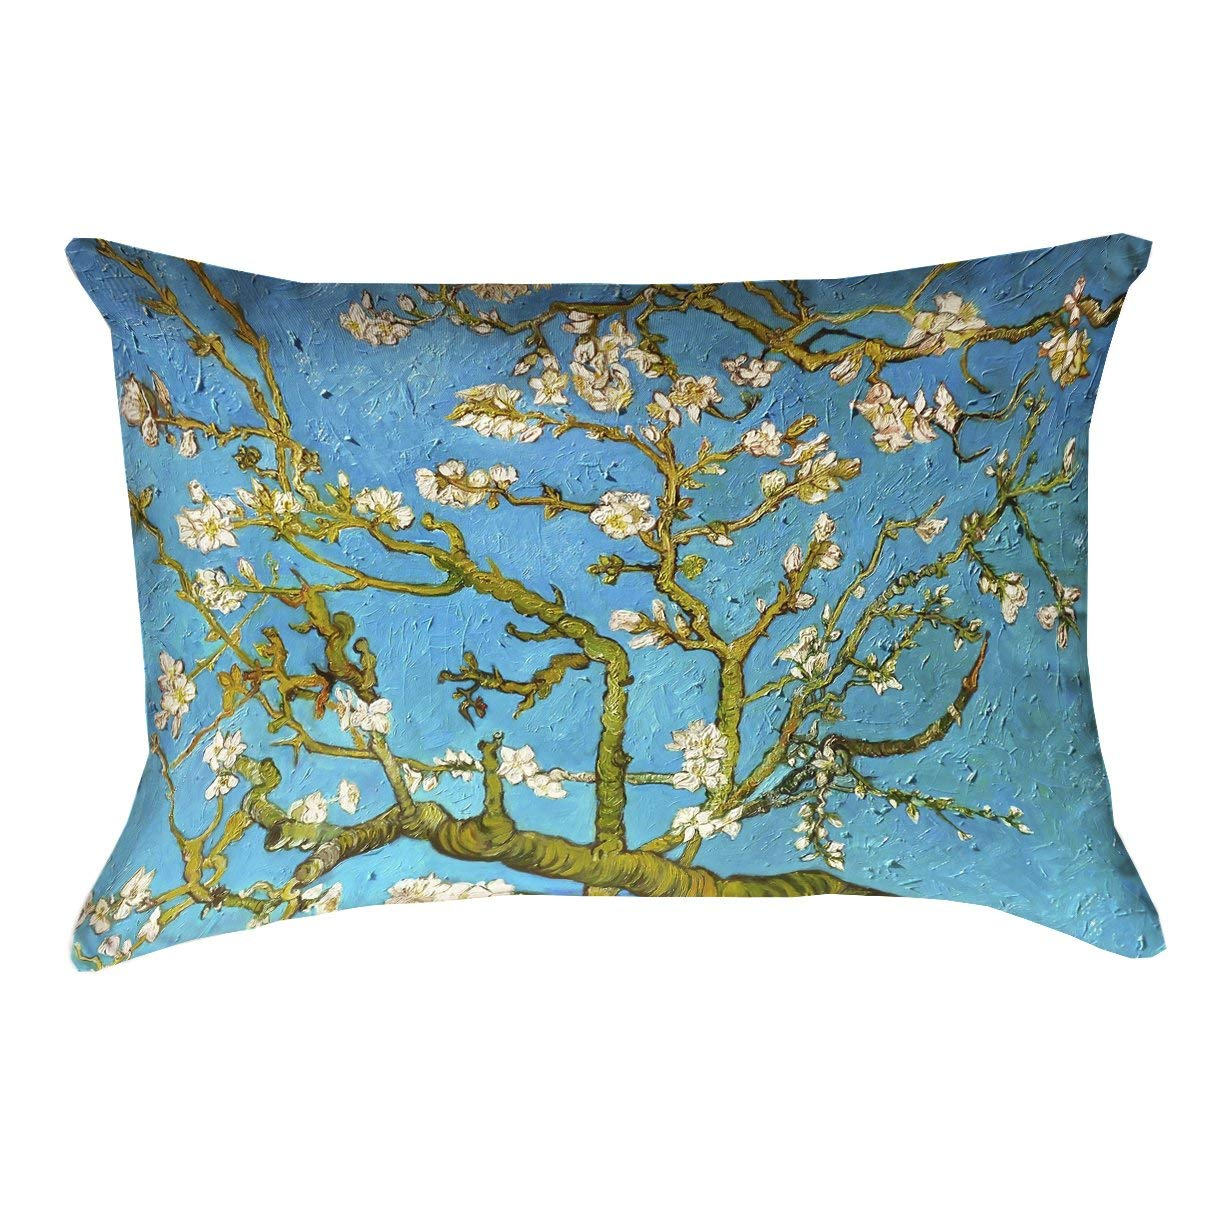 "ArtVerse Vincent Van Gogh 14"" x 20"" UV Properties-Waterproof and Mildew Proof Almond Blossom Indoor/Outdoor Pillow"